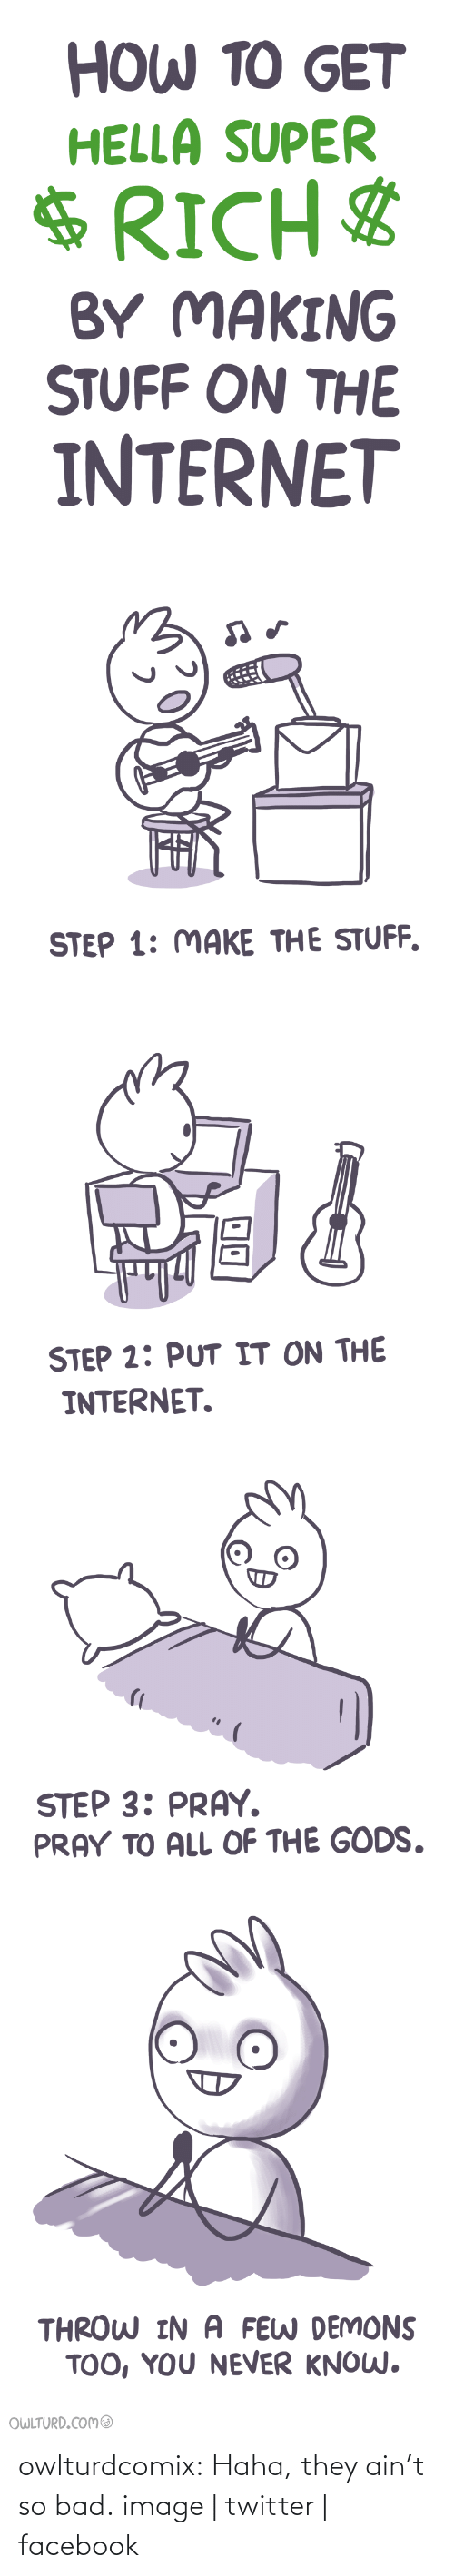 Shenanigansen: HOW TO GET  HELLA SUPER  $RICH$  BY MAKING  STUFF ON THE  INTERNET   STEP 1: MAKE THE STUFF.   STEP 2: PUT IT ON THE  INTERNET.   STEP 3: PRAY.  PRAY TO ALL OF THE GODS.   THROW IN A FEW DEMONS  TOO, YOU NEVER KNOW.  OWLTURD.COM@ owlturdcomix:  Haha, they ain't so bad. image | twitter | facebook